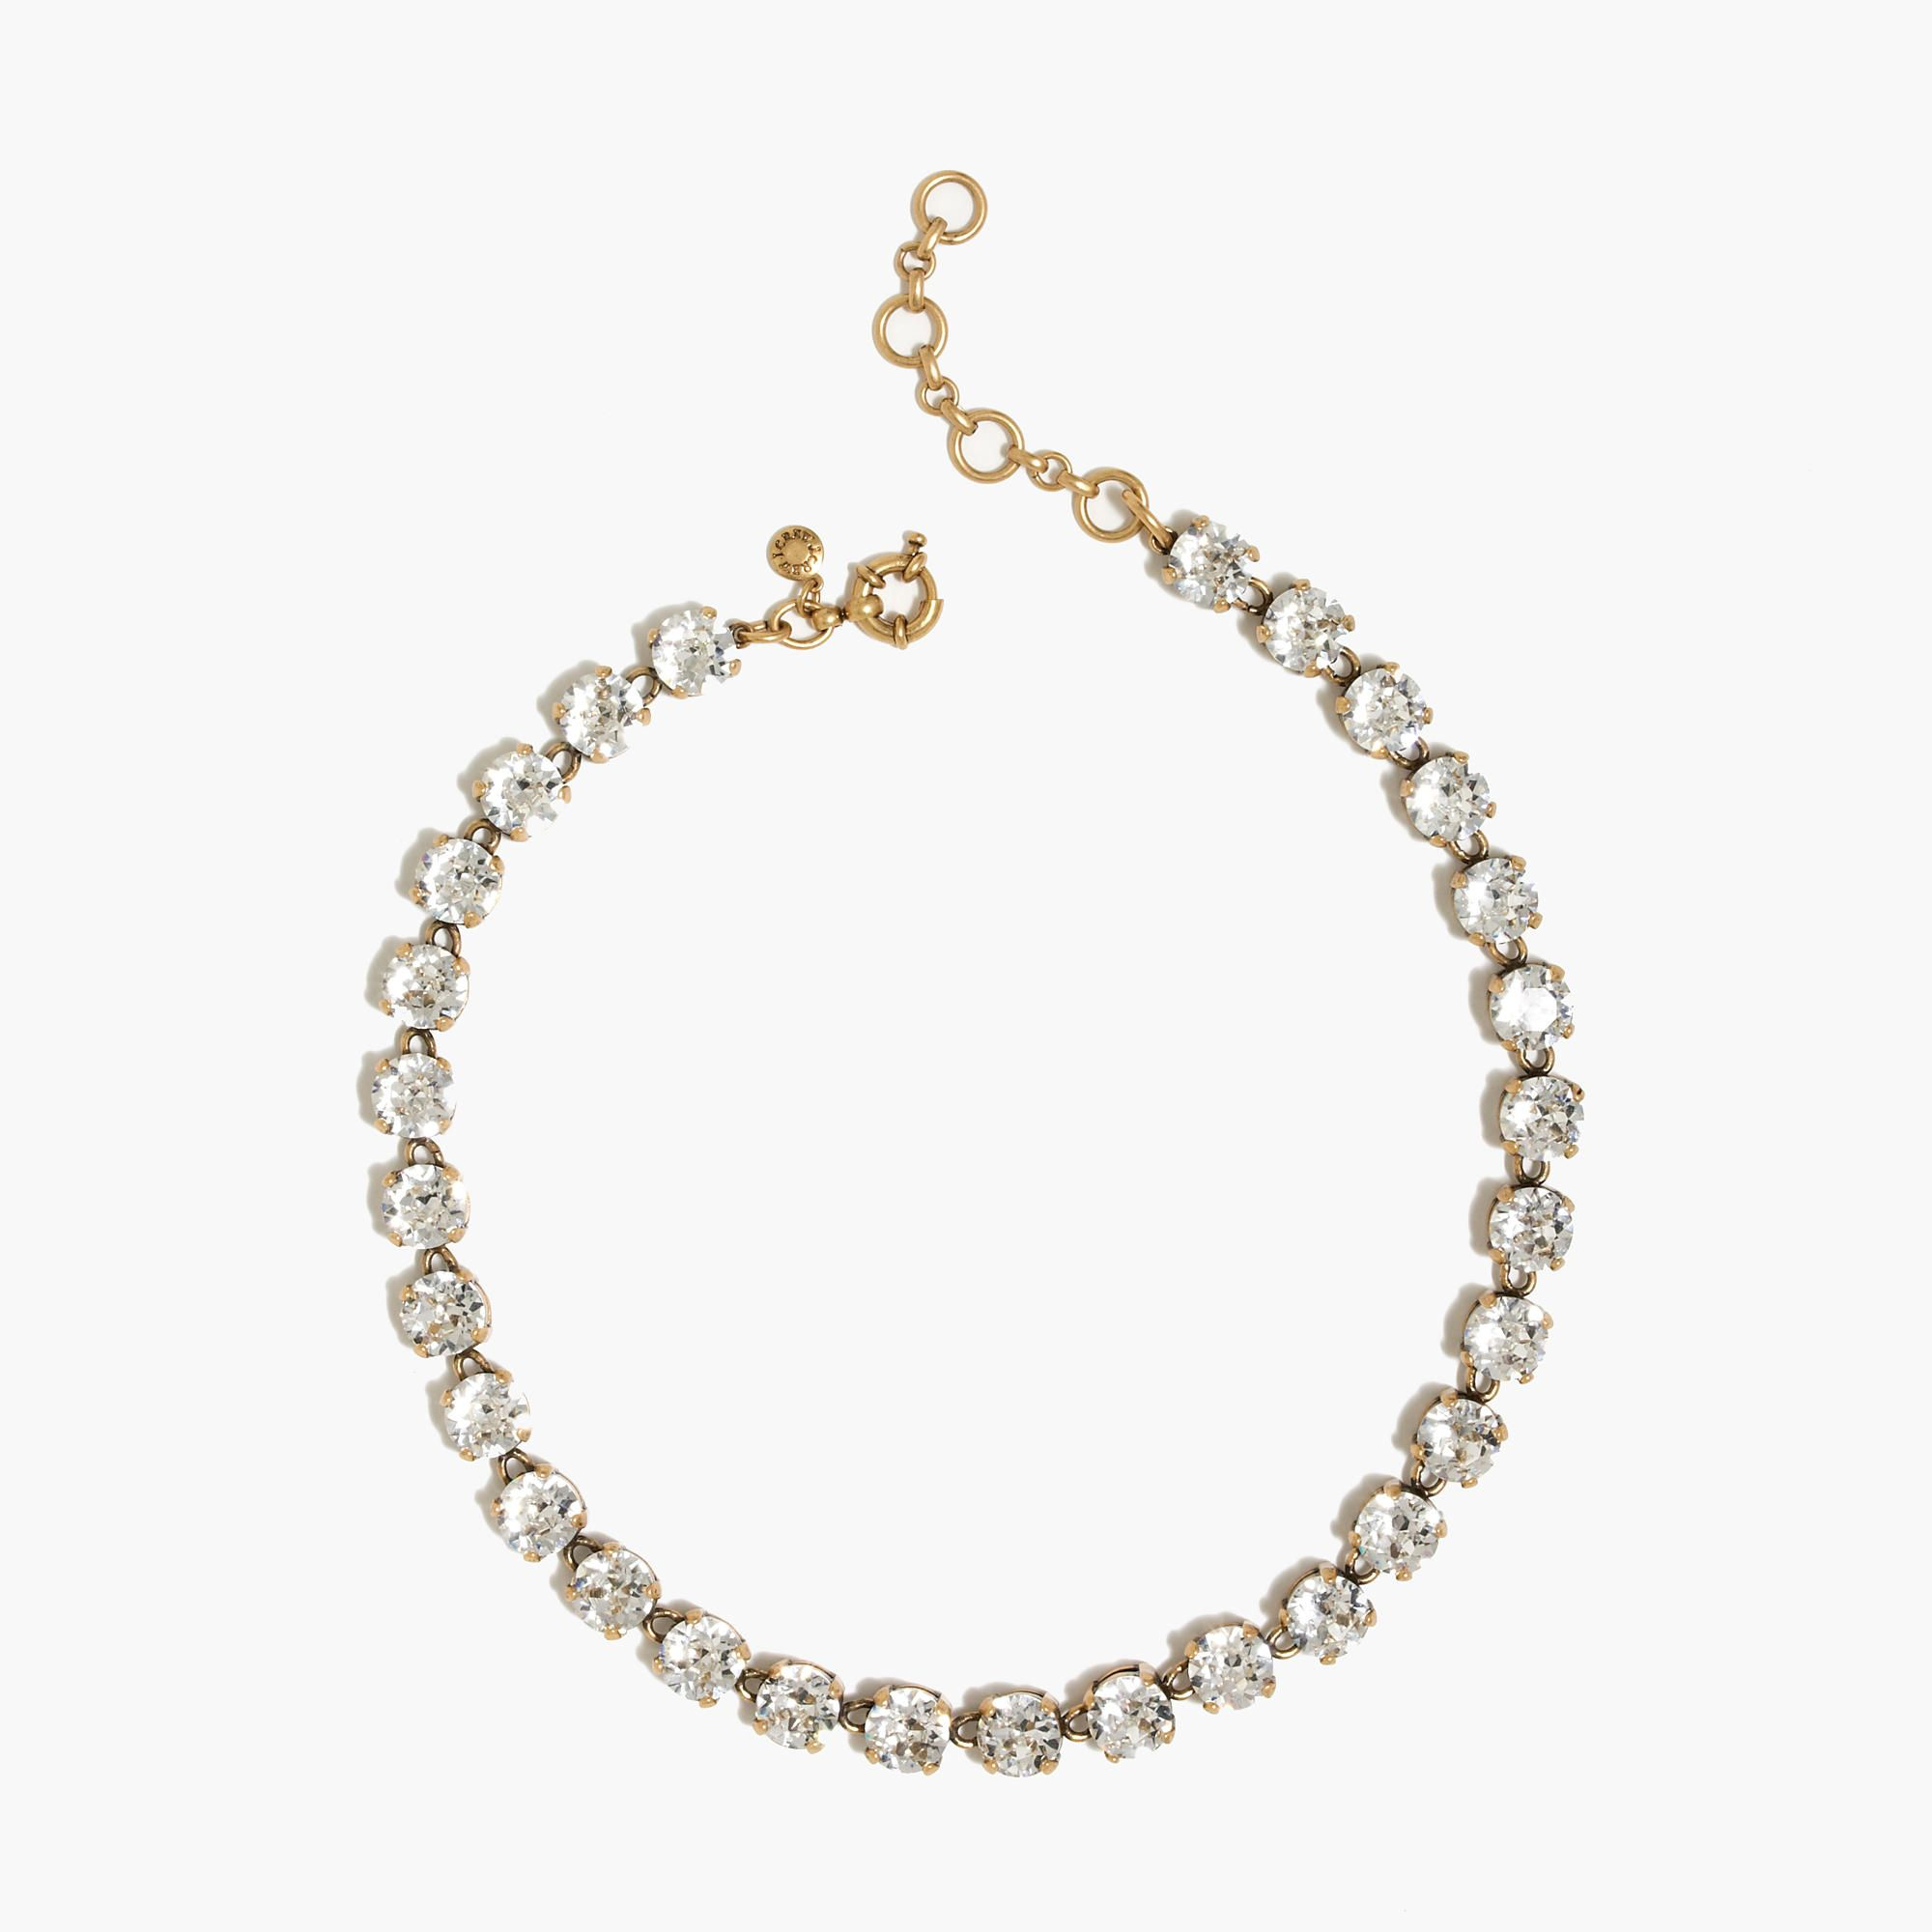 Shop the Swarovski Crystal Necklace at JCrewcom and see our entire